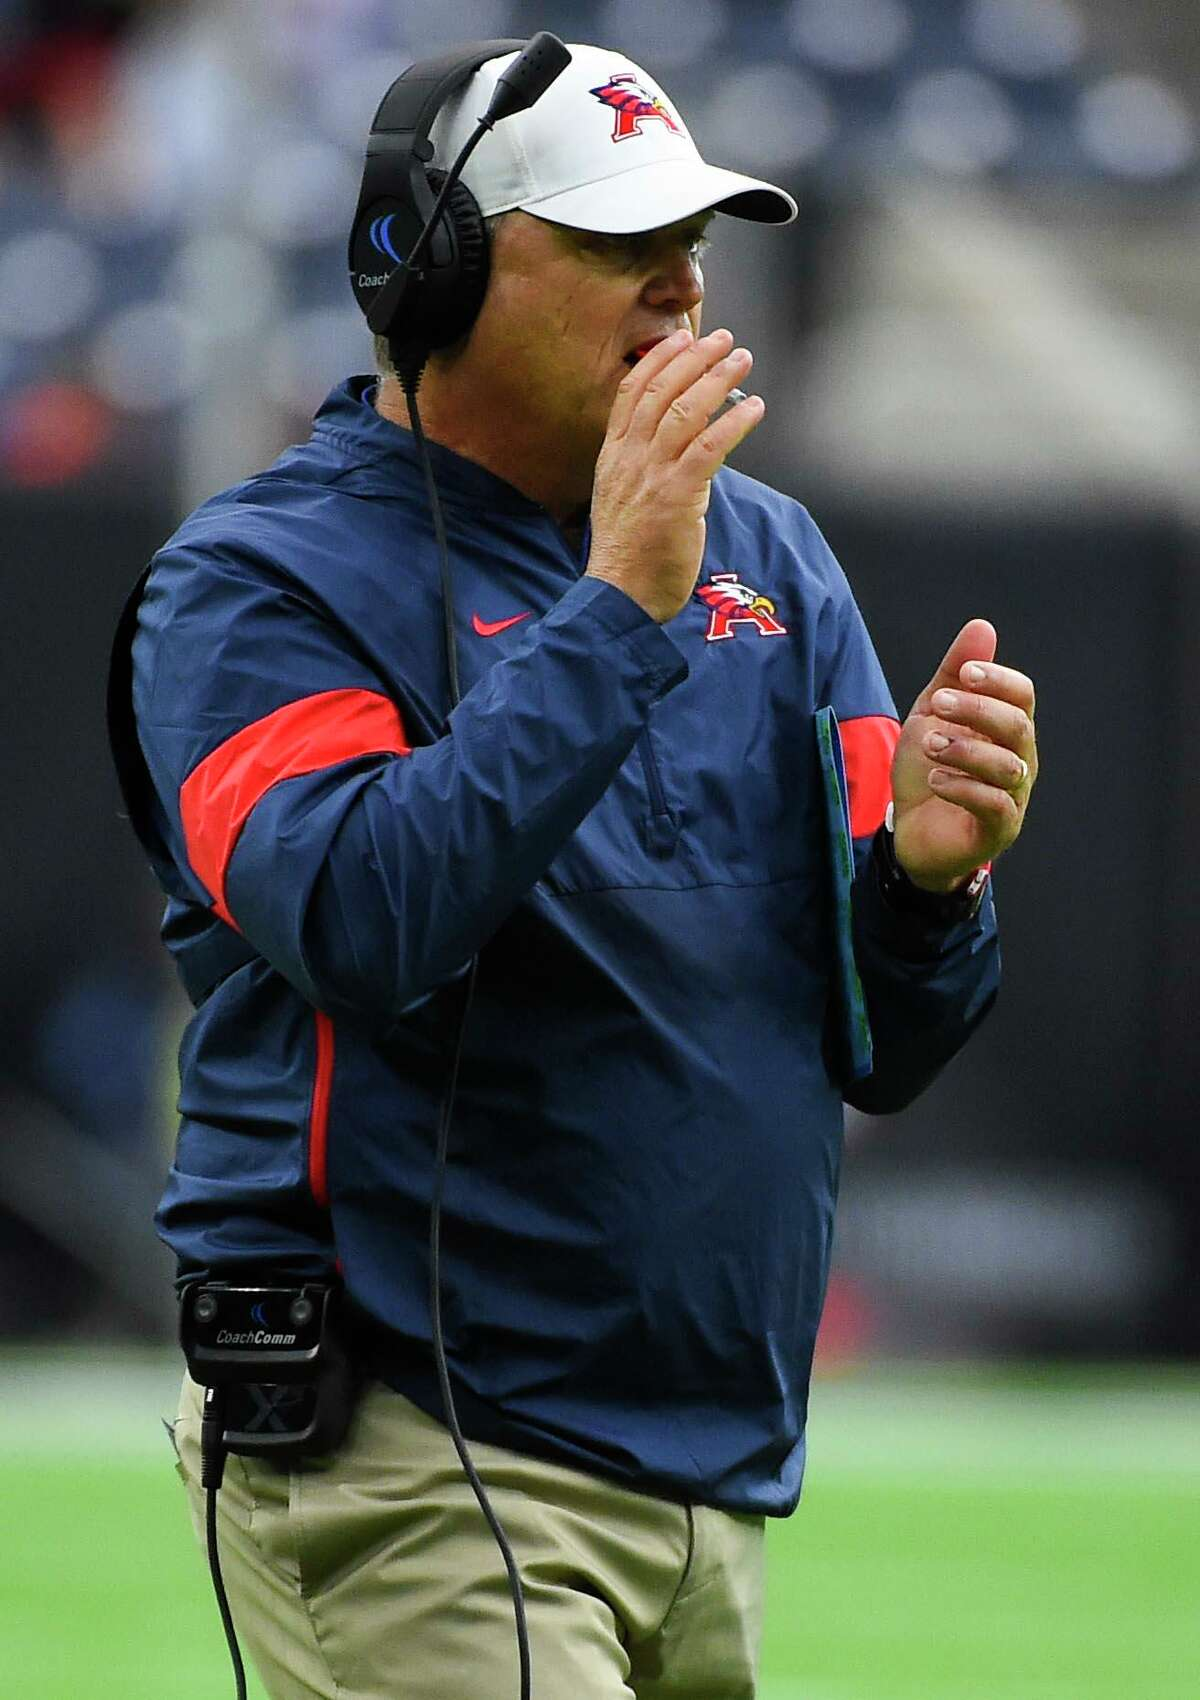 Atascocita head coach Craig Stump celebrates an Eagles' touchdownduring the first half of a high school football playoff game against Dickinson, Saturday, Nov. 23, 2019, in Houston.